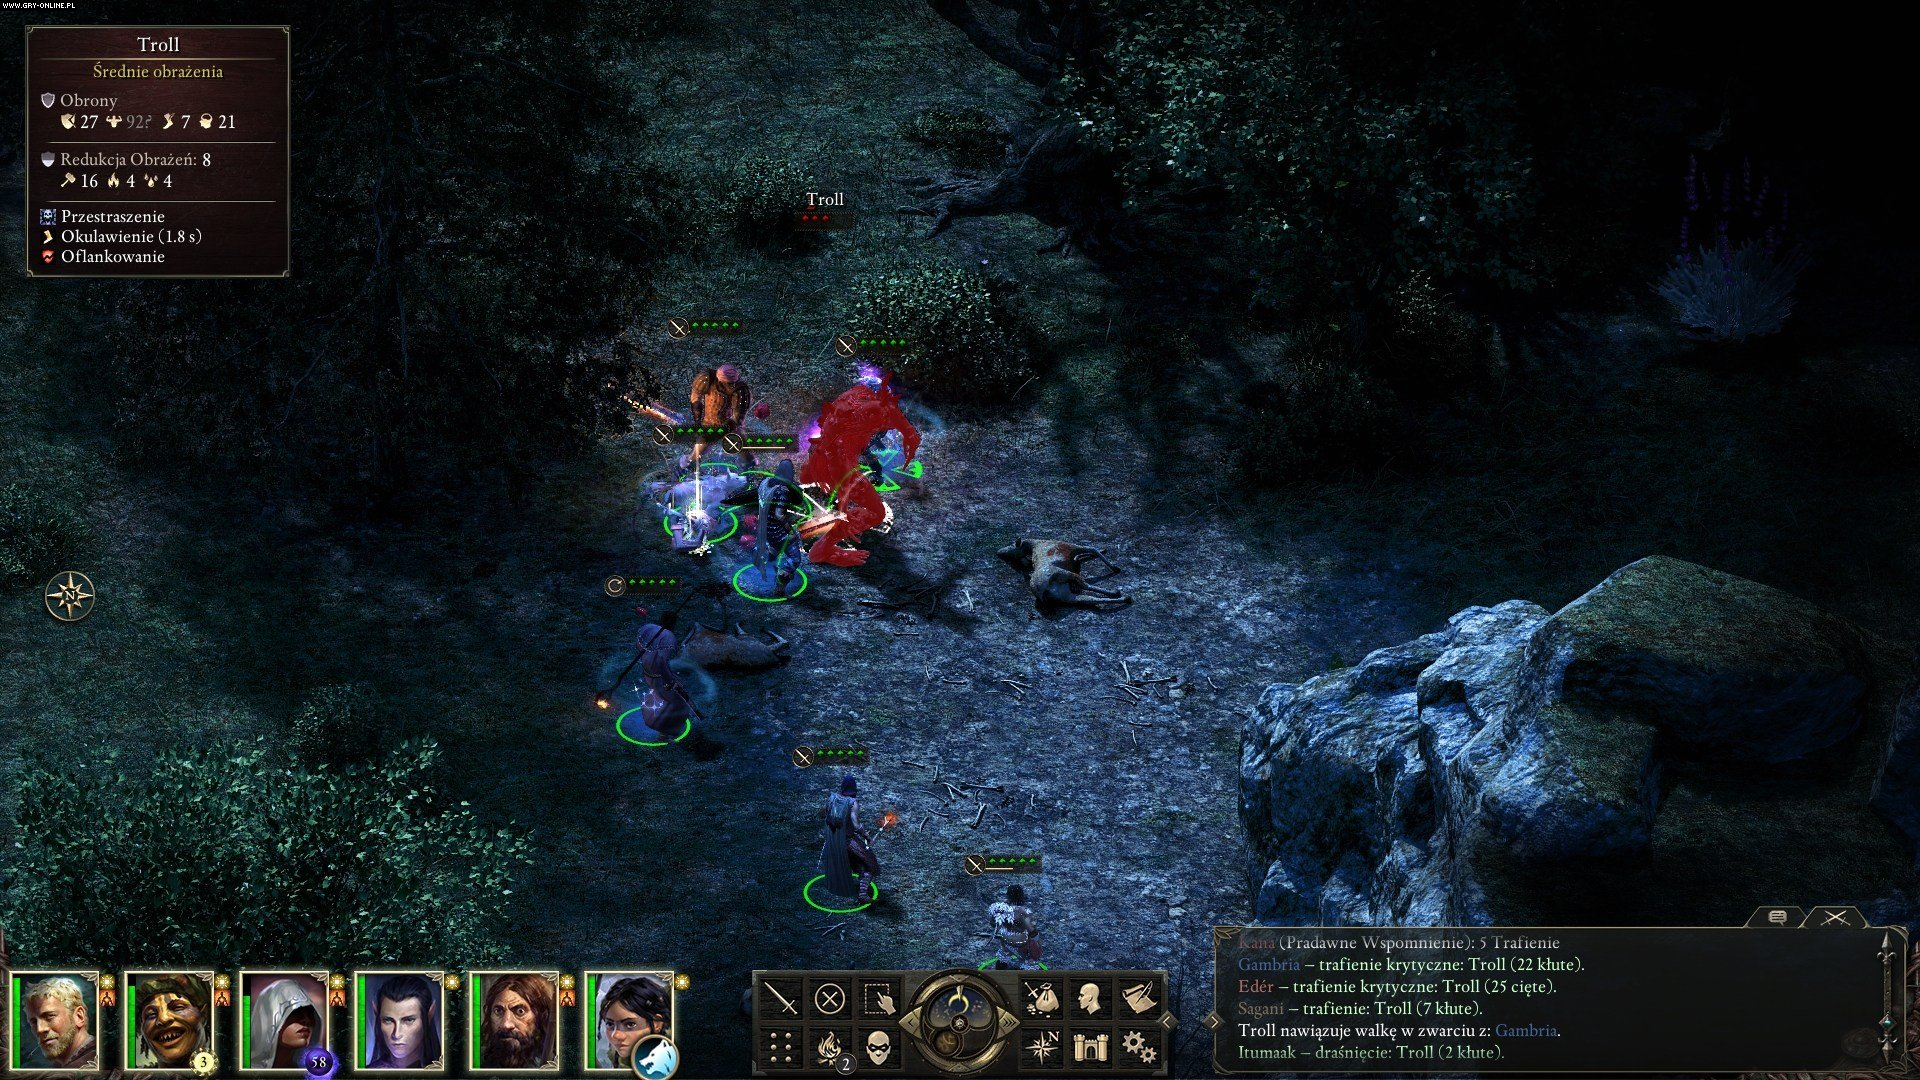 Pillars of Eternity PC Games Image 7/93, Obsidian Entertainment, Paradox Interactive